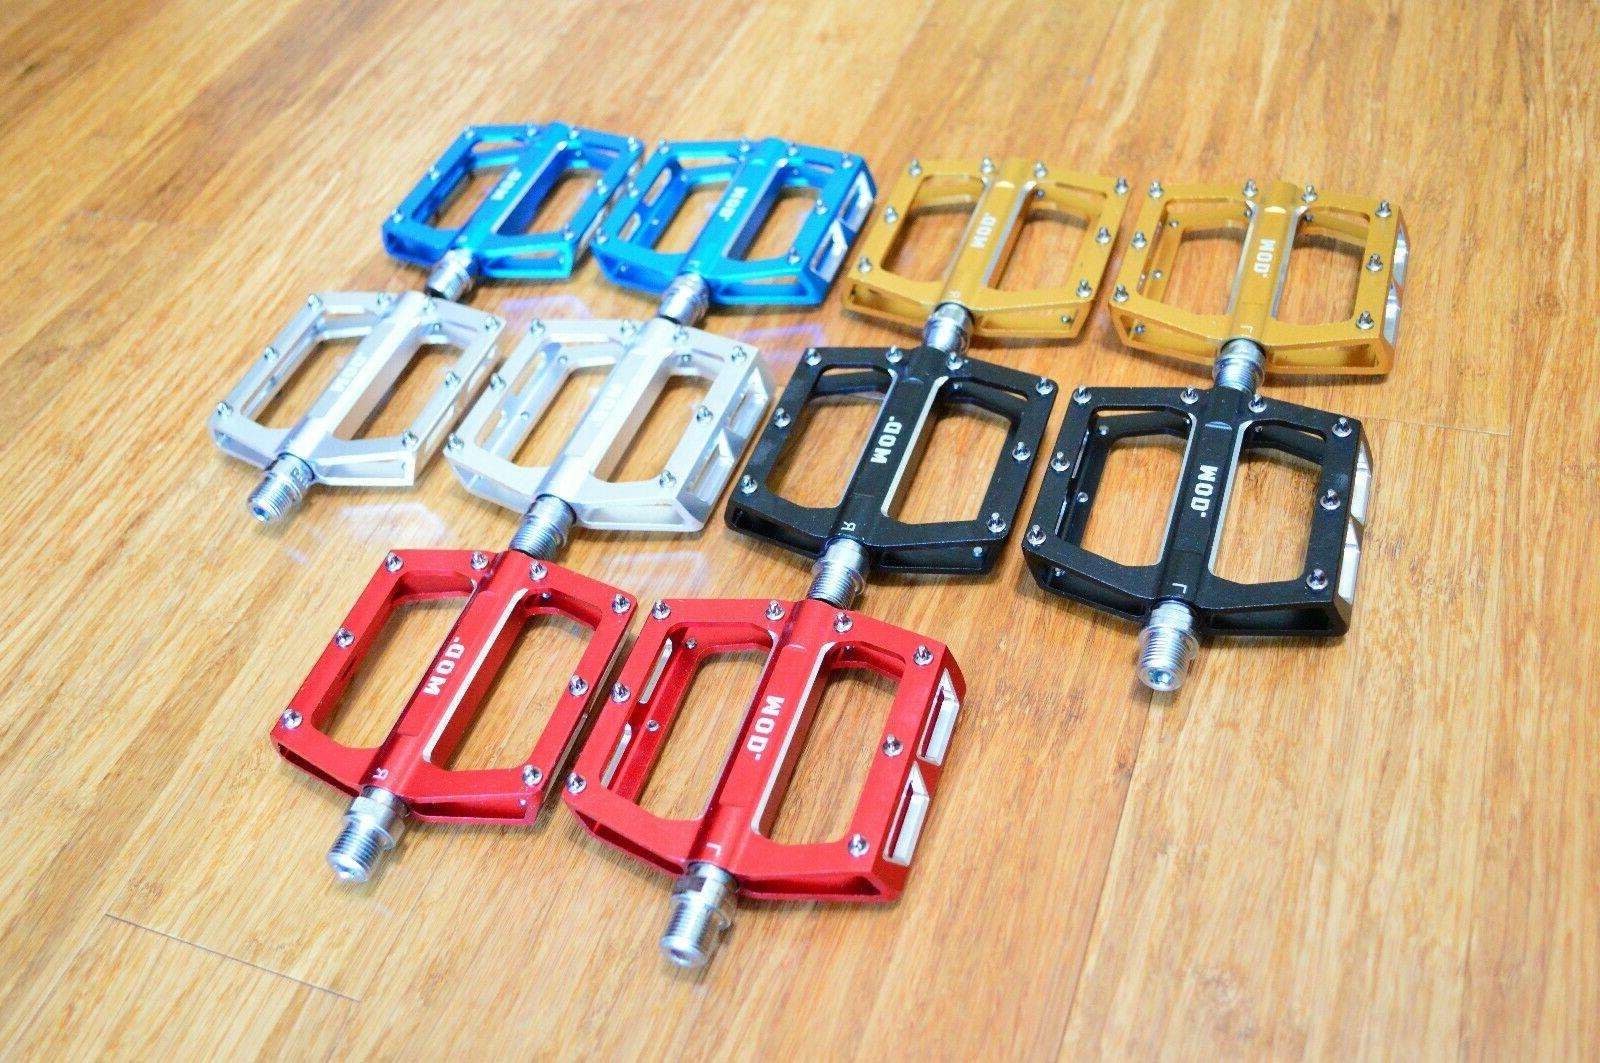 DH Mountain pedals